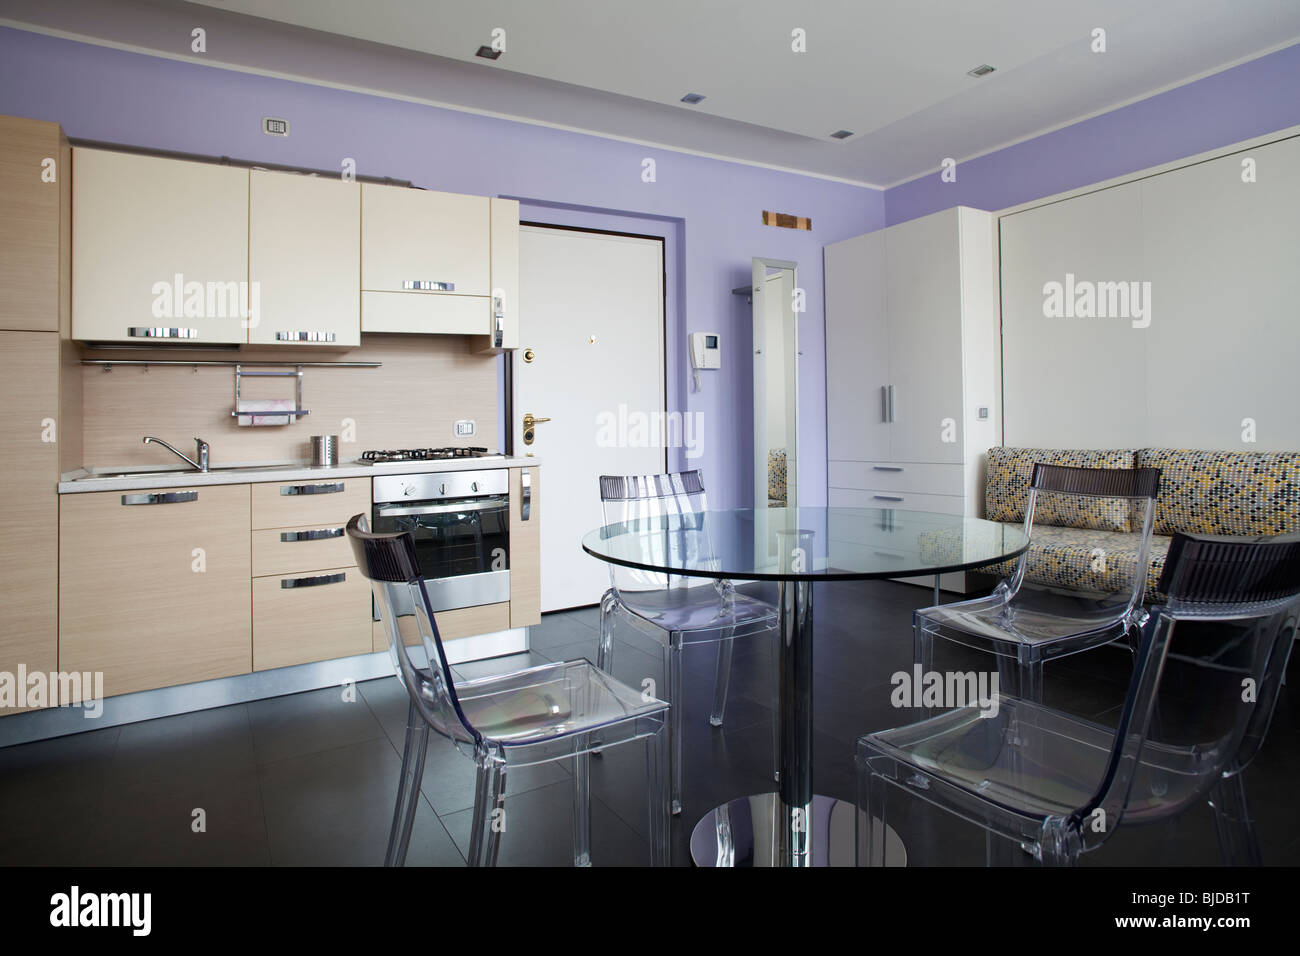 Studio Apartment Stockfotos & Studio Apartment Bilder - Alamy